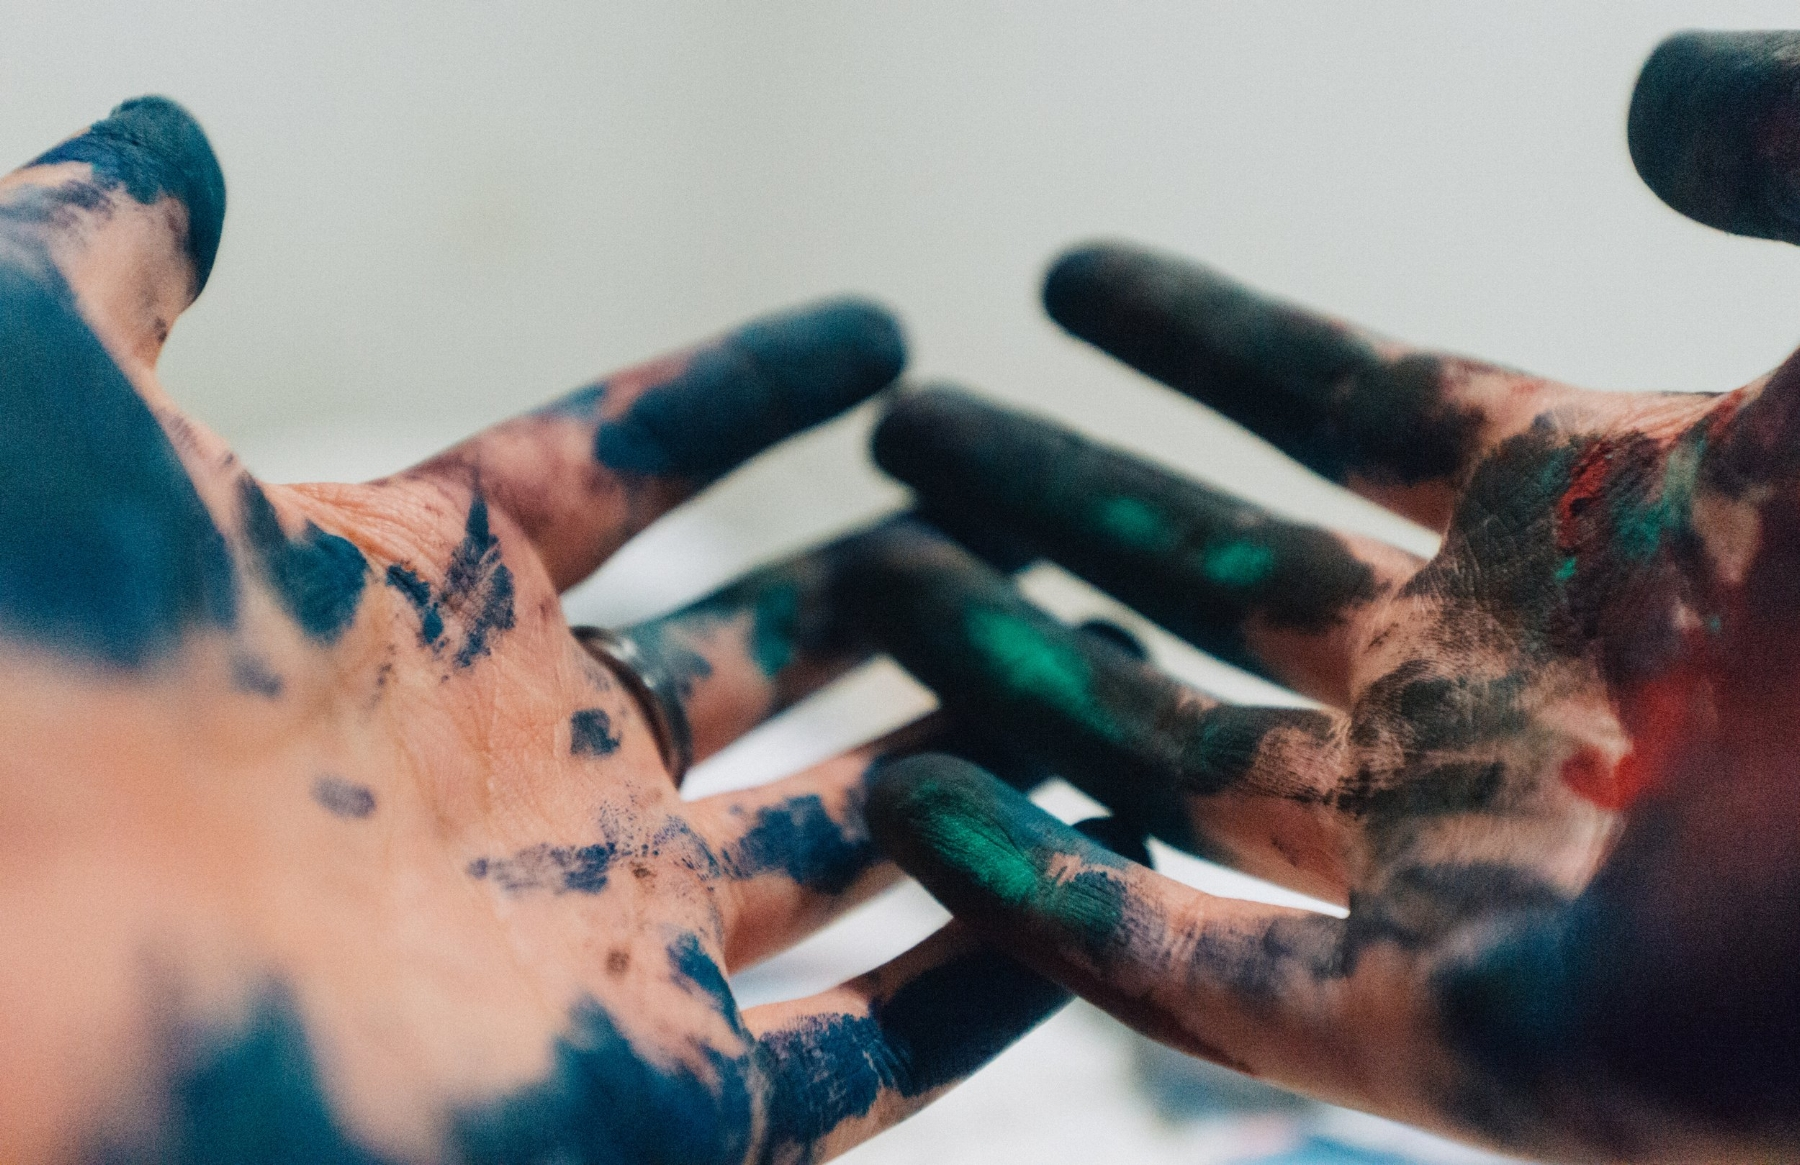 Art-therapy-Melbourne-trauma-informed-art-therapy-withMelbourne-based-psychotherapist-Amanda-Robins. Creative-therapies-for-complex-trauma.Hands with blue and green paint.